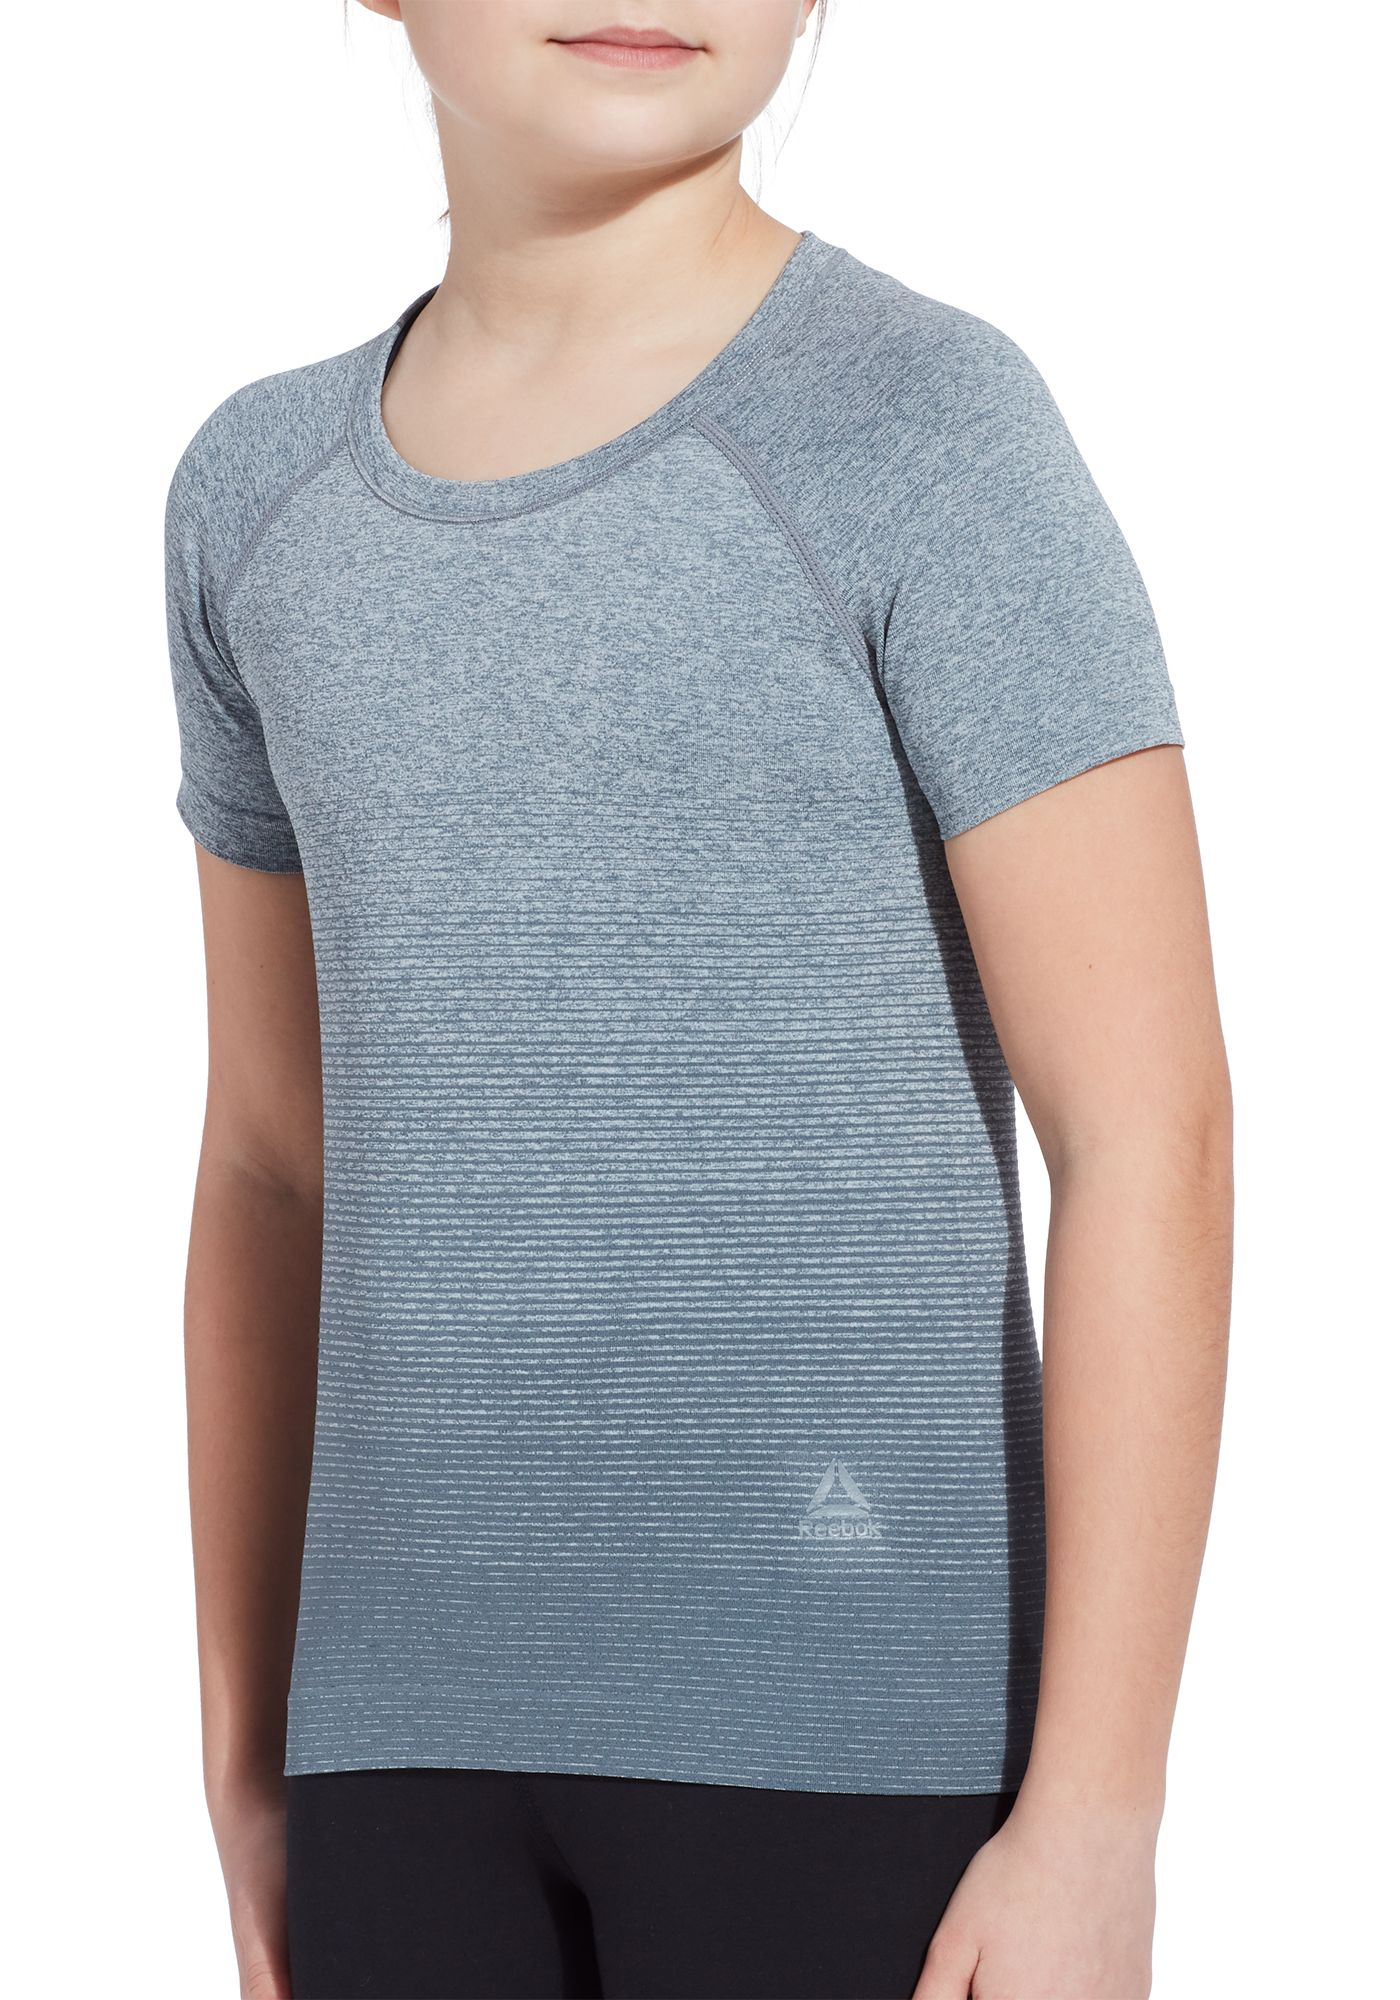 Reebok Girls' Seamless T-Shirt